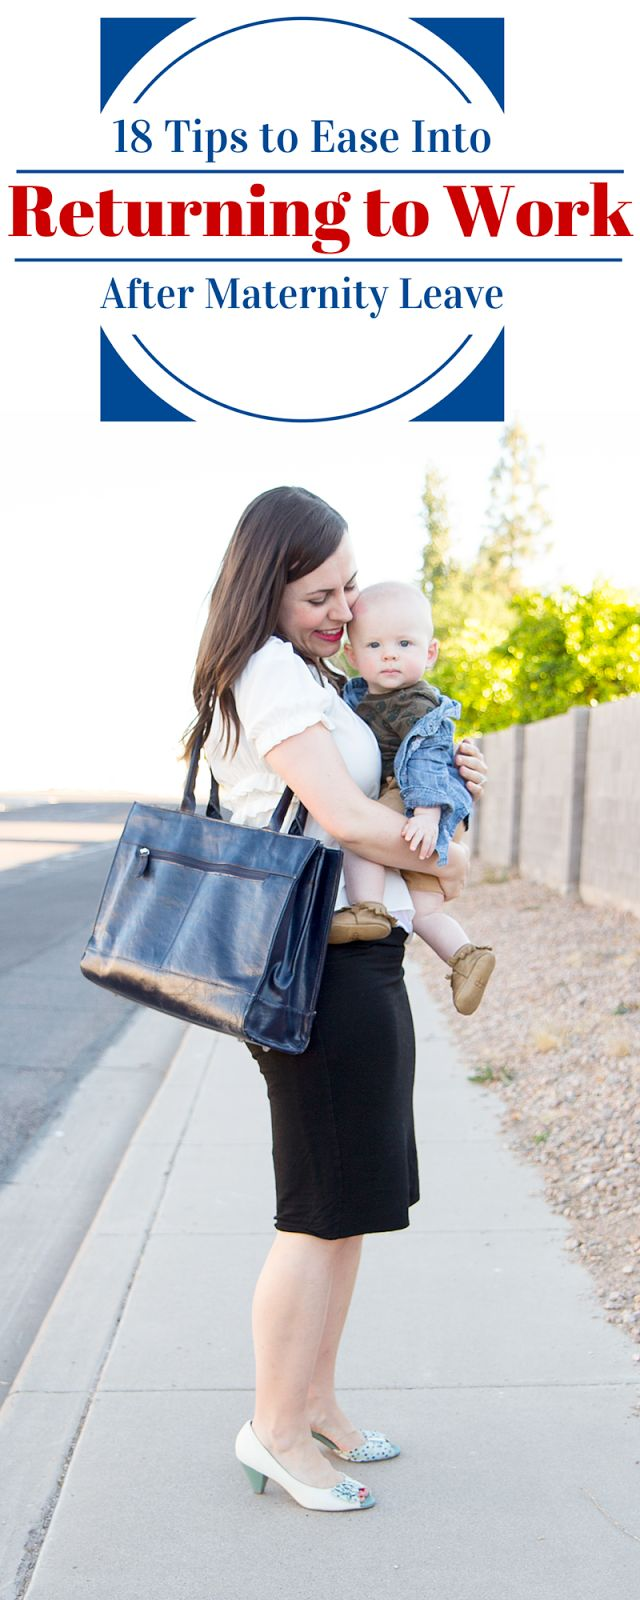 When I left for maternity leave on a Friday knowing I'd be induced on Monday I was afraid. Not so much of labor and delivery as a first time mom, but of the feeling of missing out on my projects, my coworkers, and my social outlet. I have a great office, I love what I… Read More